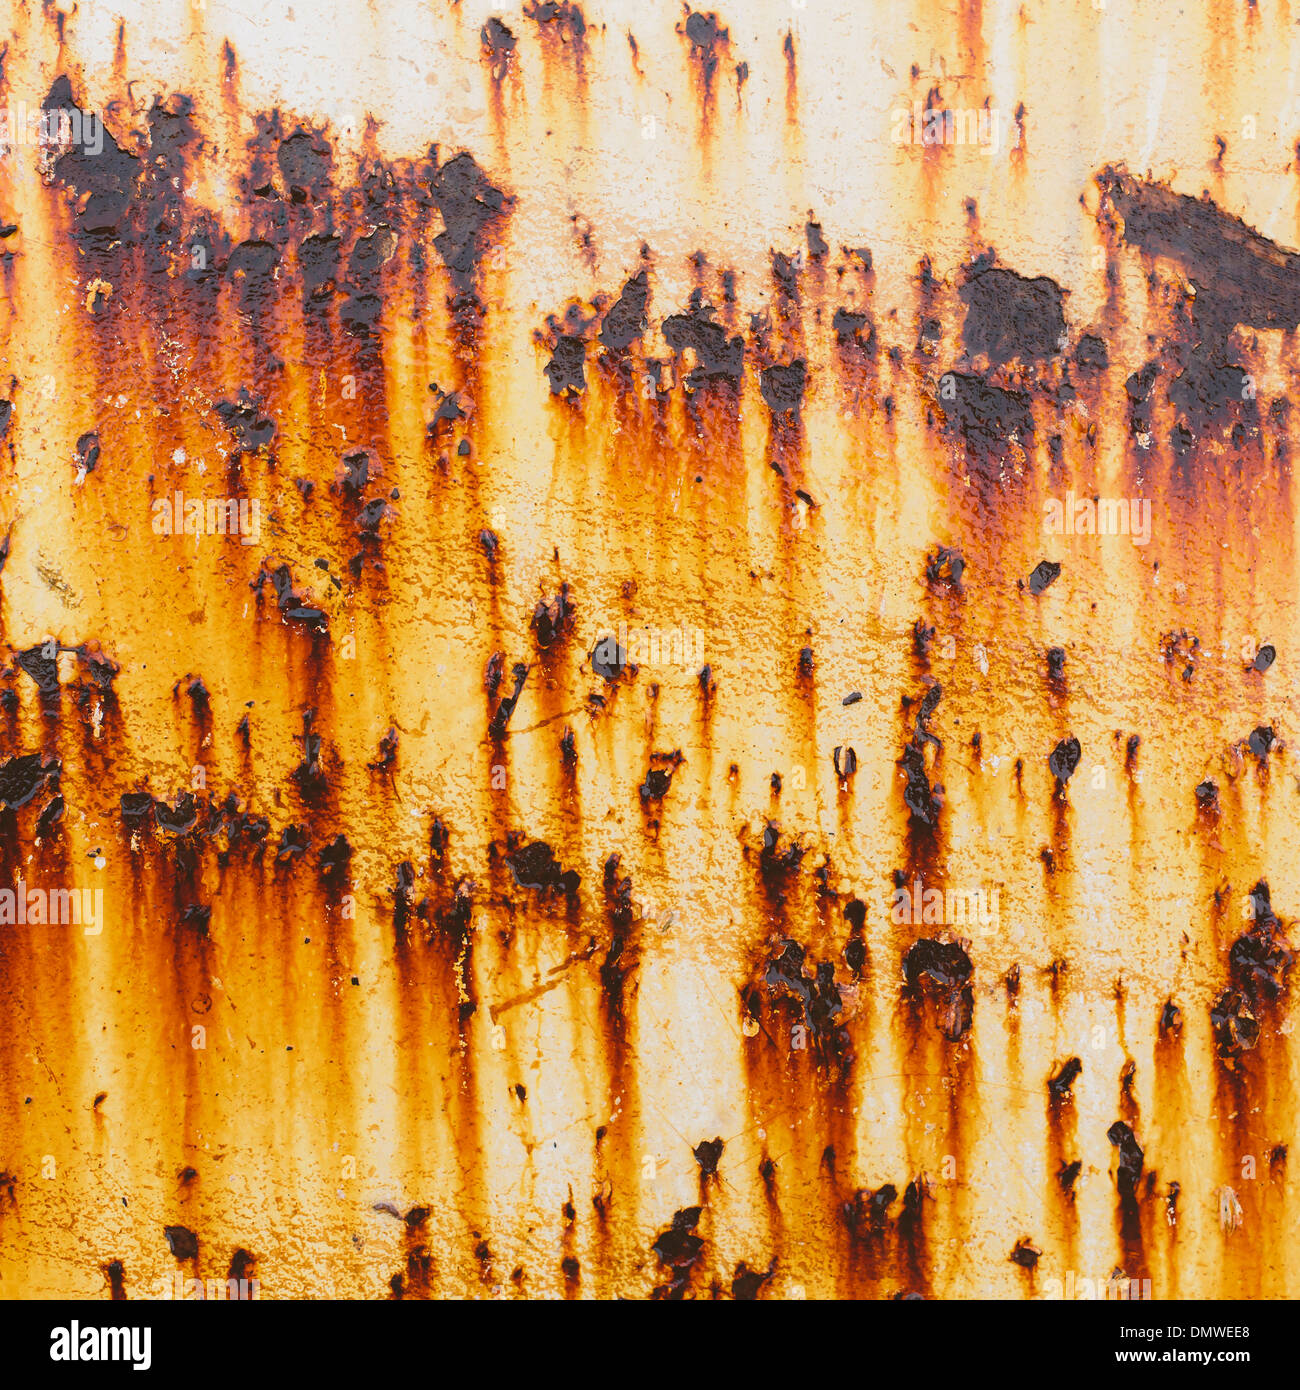 Streaks of rust from steel bolts on a metal sheet.l - Stock Image